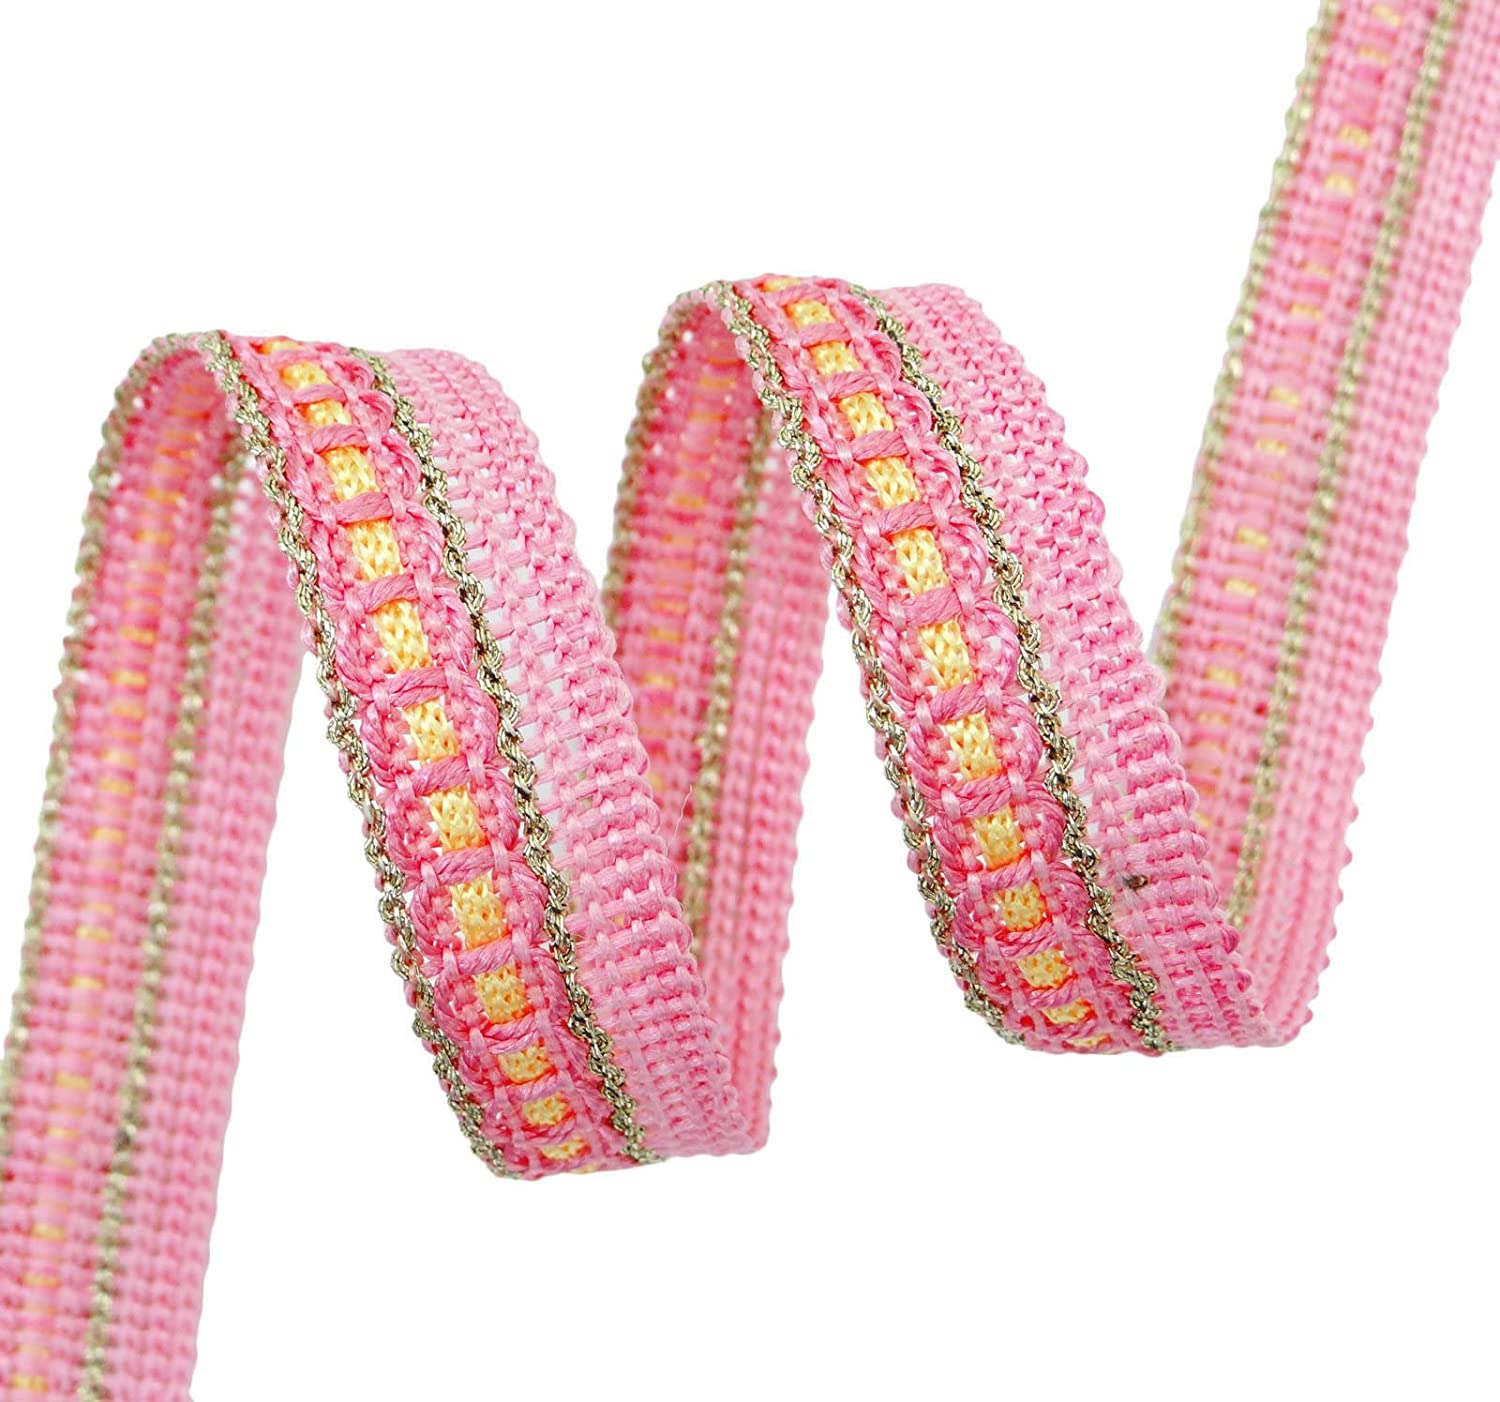 Metallic Braid Supply Edging Lace Trim Sewing Crafting 12.7 mm Wide By 18 Yards Knitwit